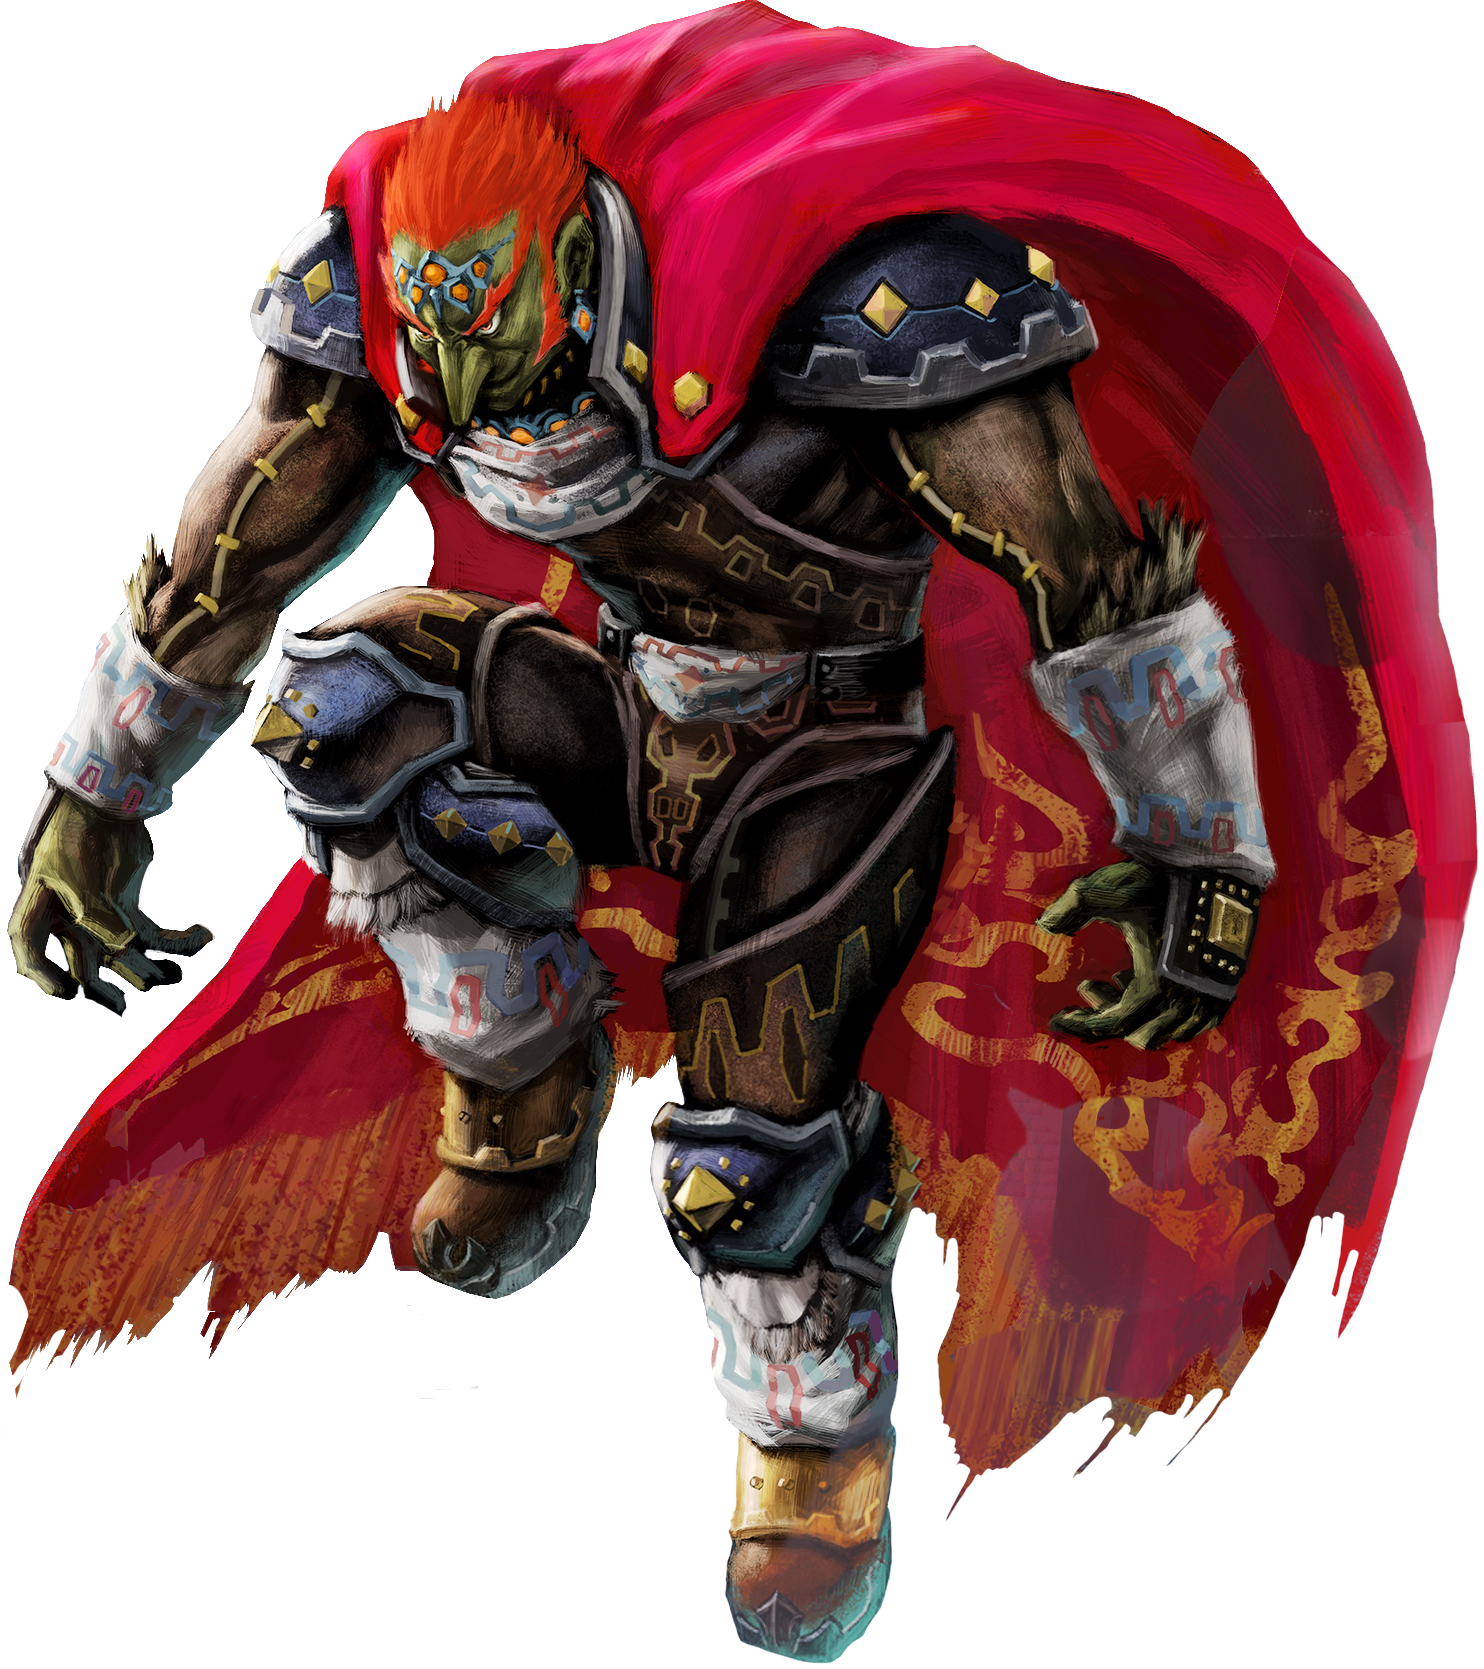 23 Ganondorf Super Smash Bros Ultimate By Tylerzm On